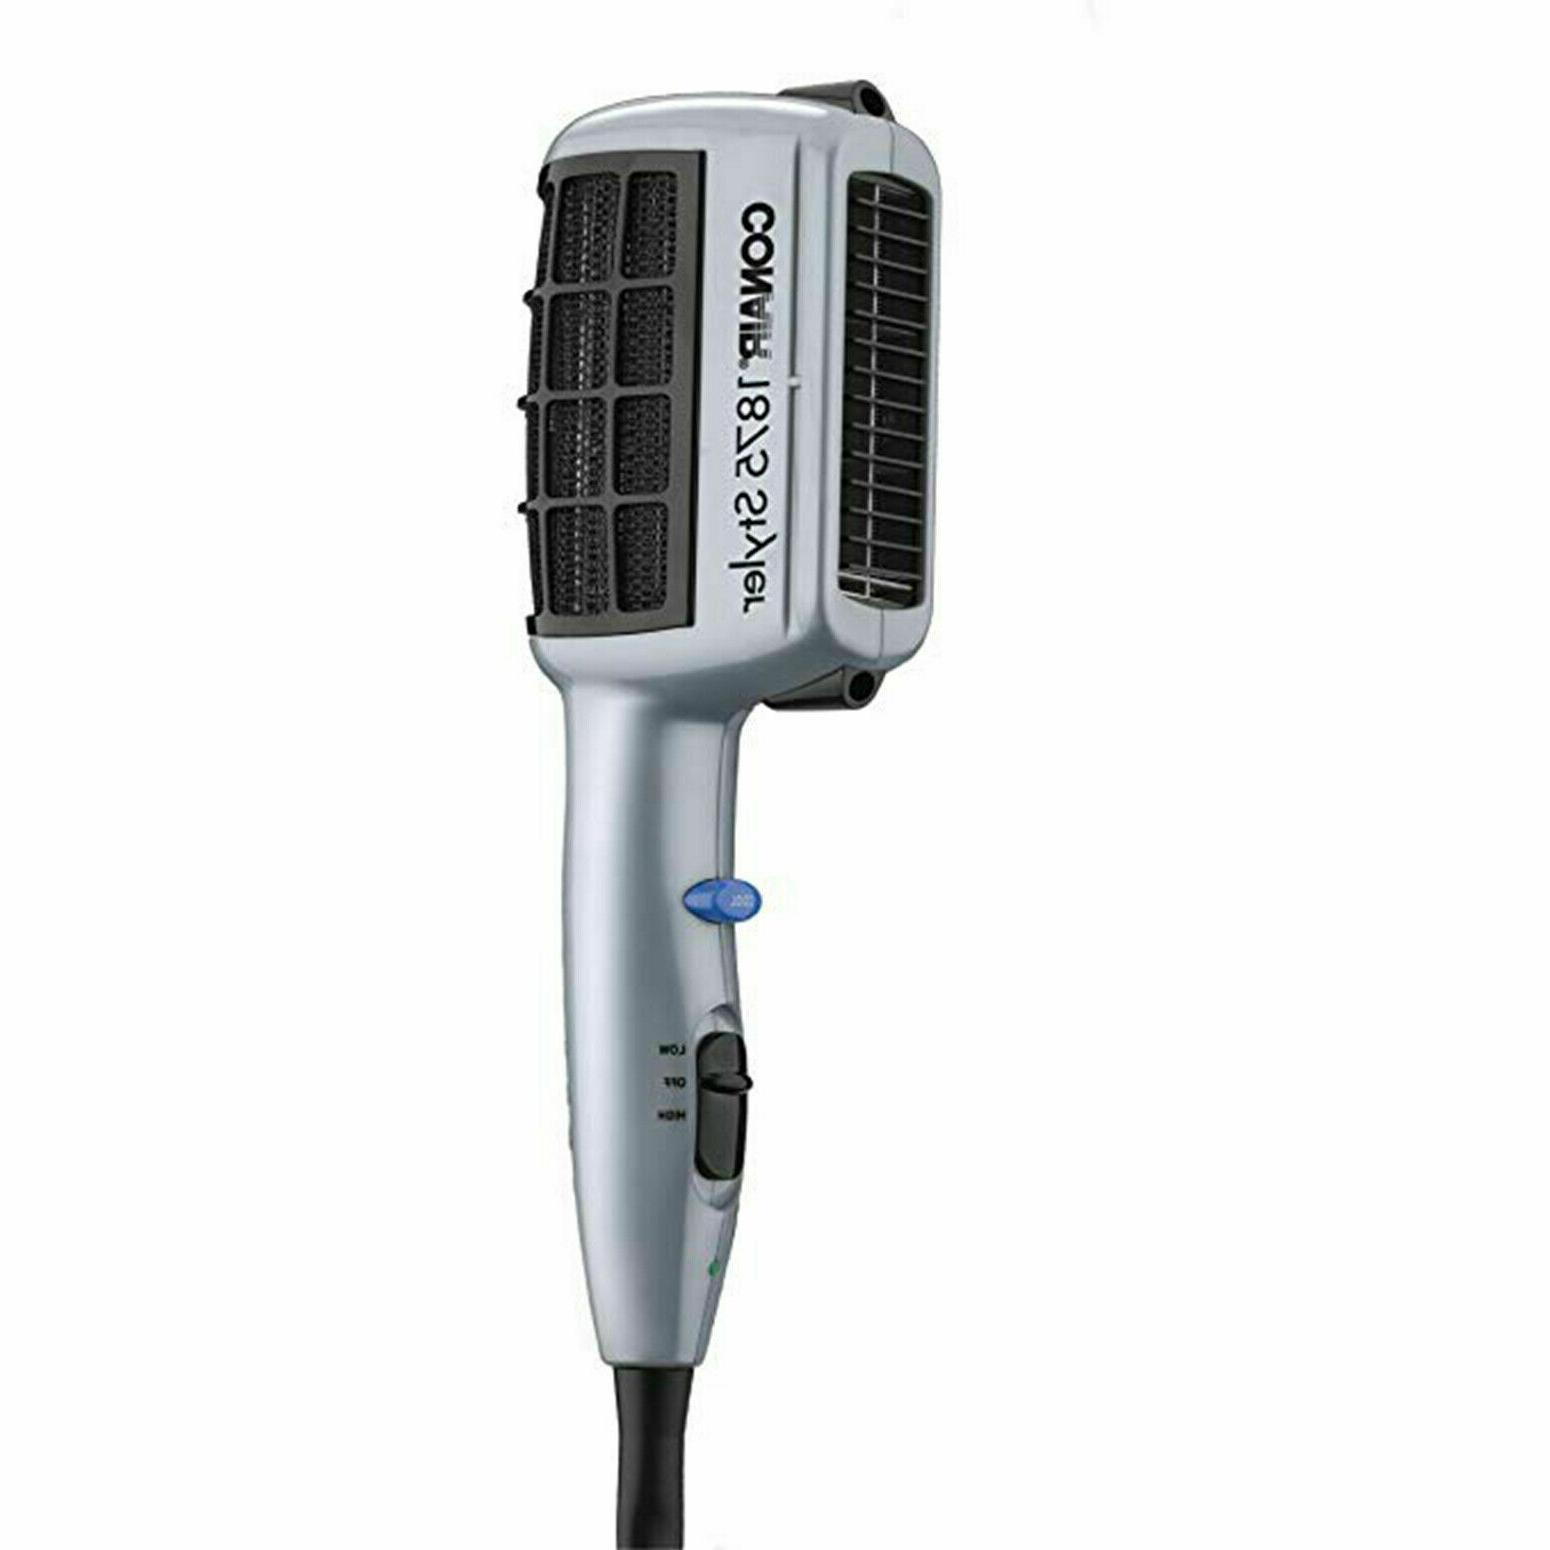 Conair 1875 Watt Hair Dryer Ionic Technology Hair Styler